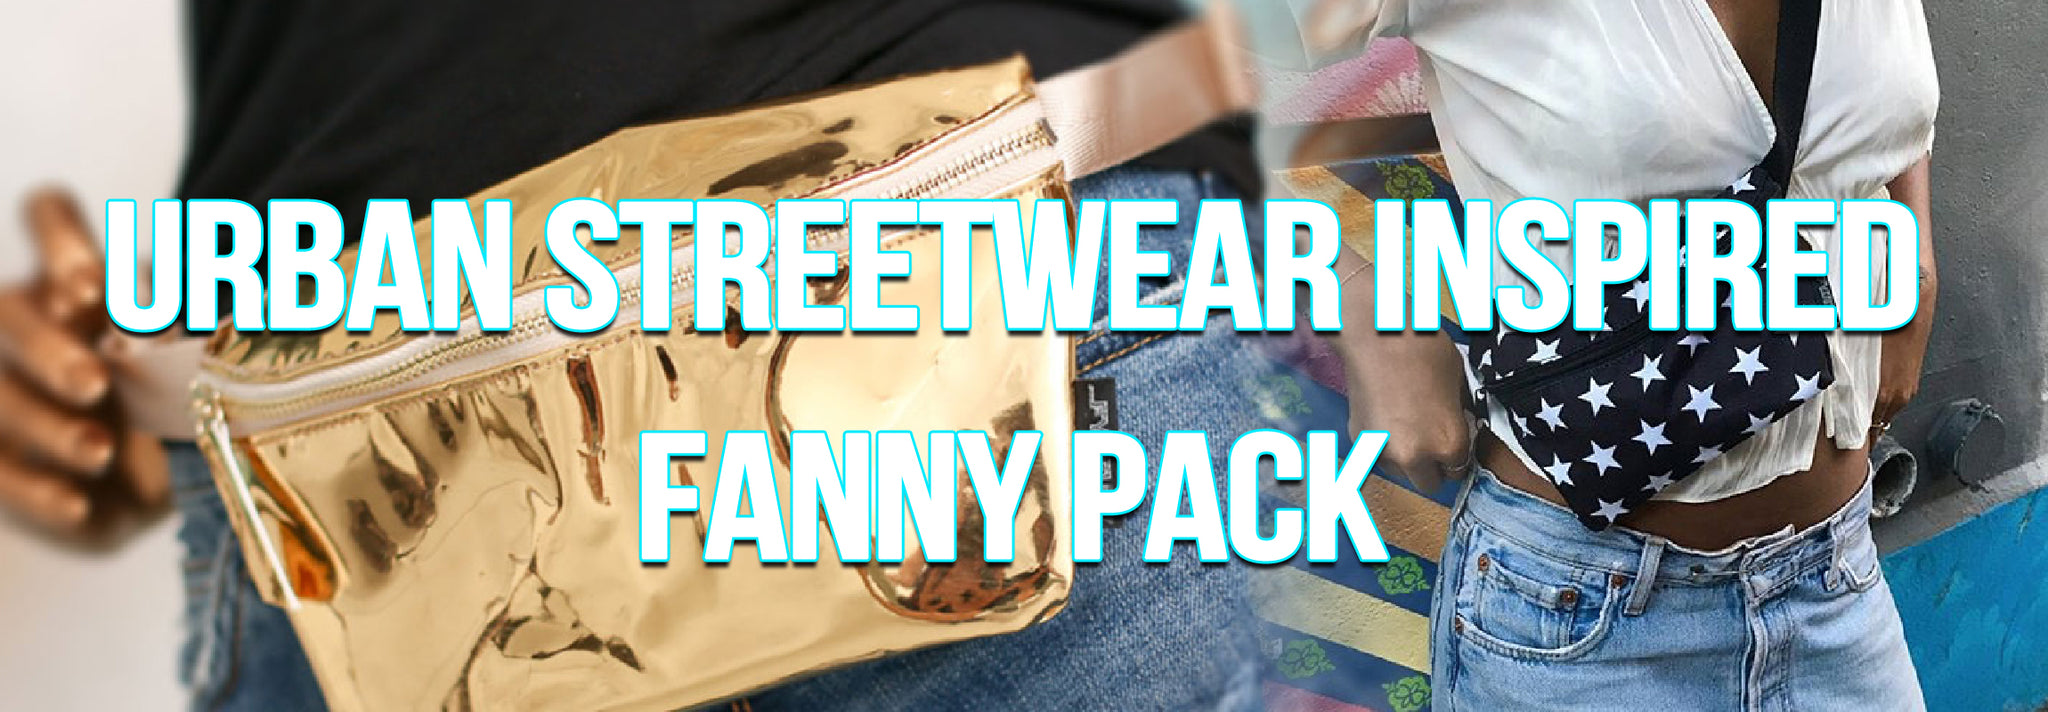 shop urban streetwear inspired fanny packs